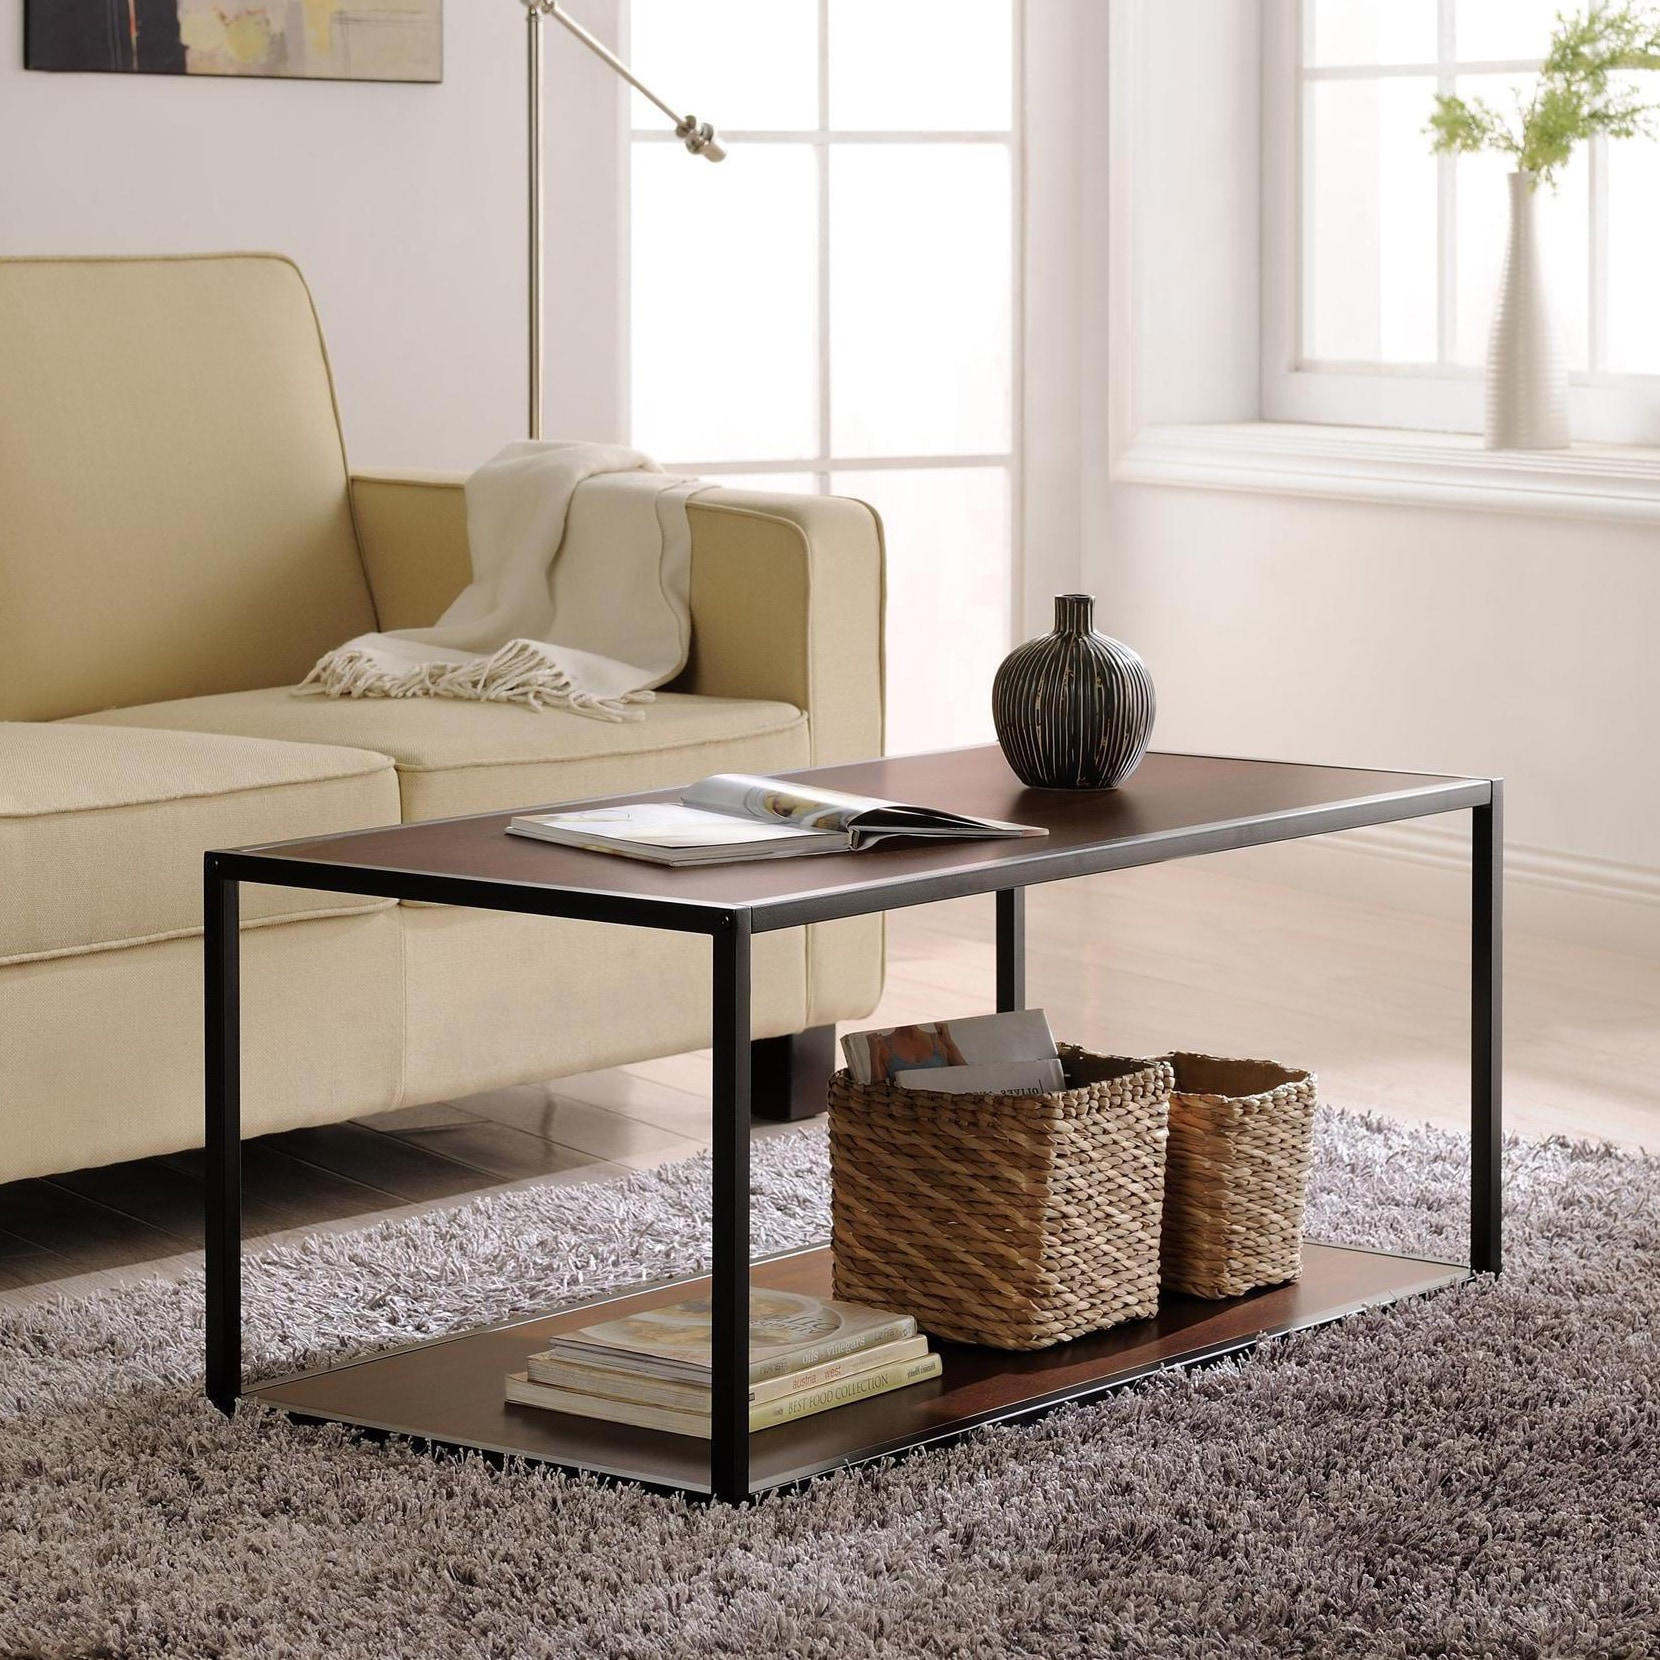 Wicker park haddon metal frame coffee table free shipping on wicker park haddon metal frame coffee table geotapseo Images